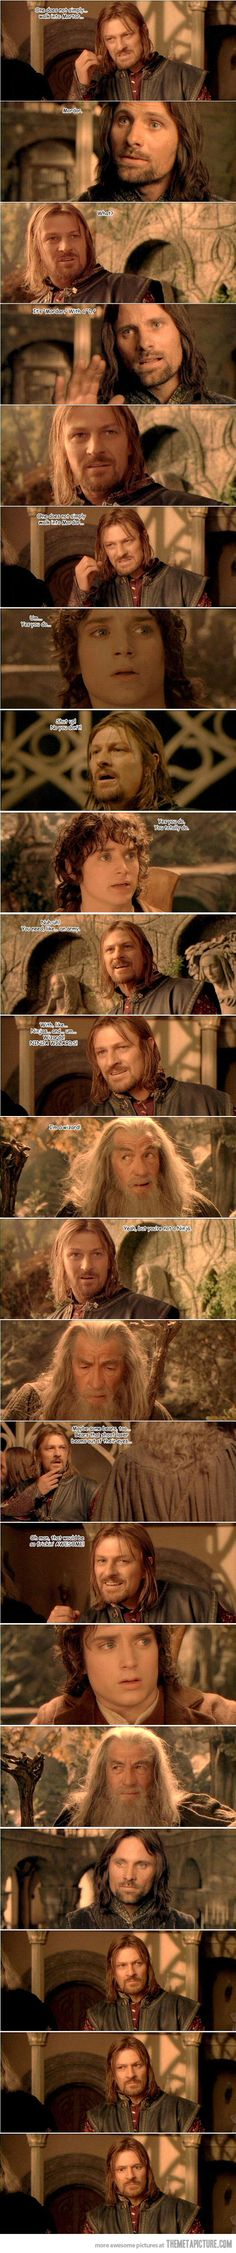 We all love you Boromir!